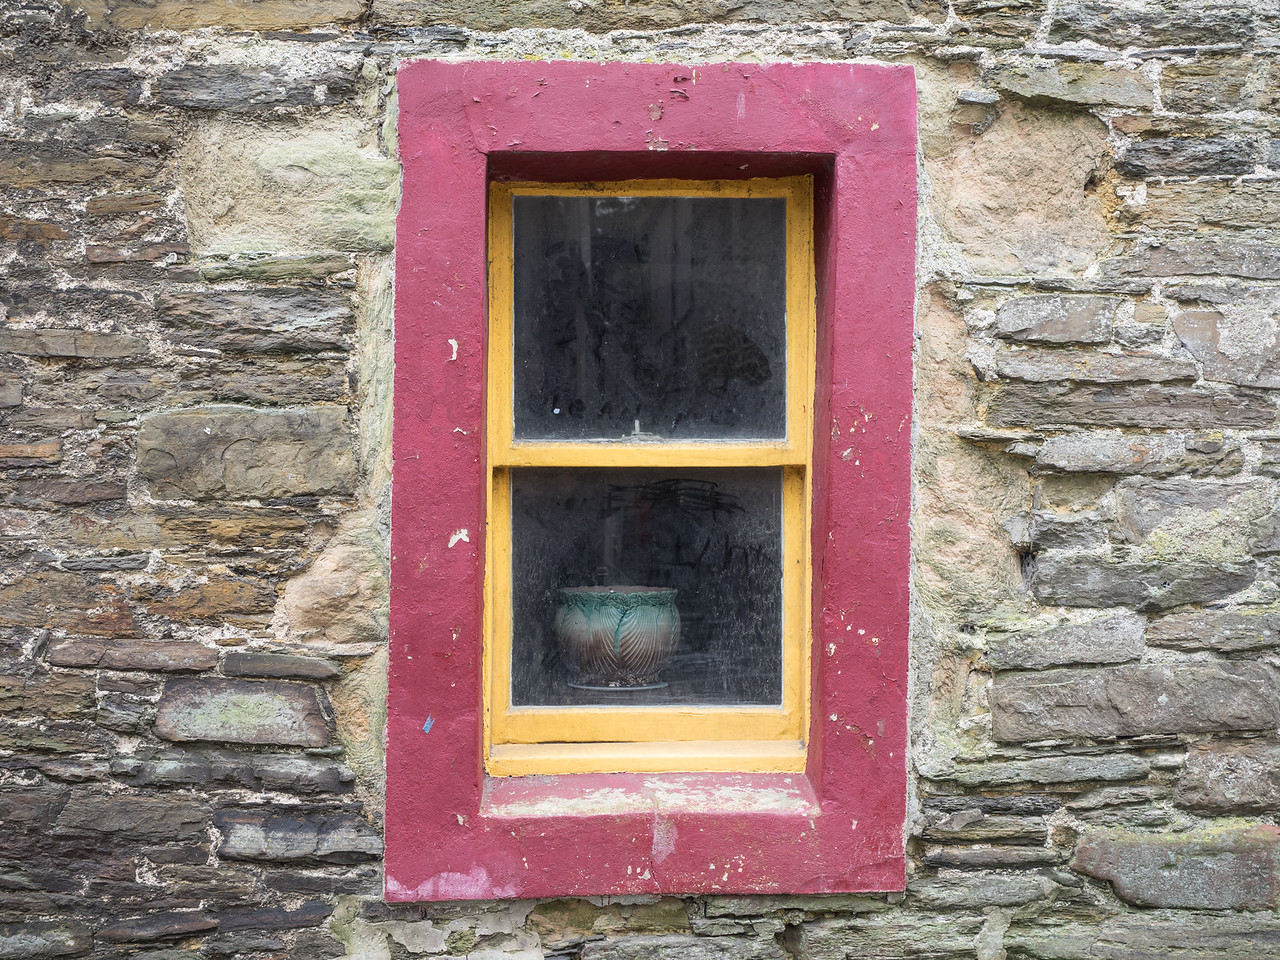 An interesting window and even more interesting pot, on the main street in Kirkwall.